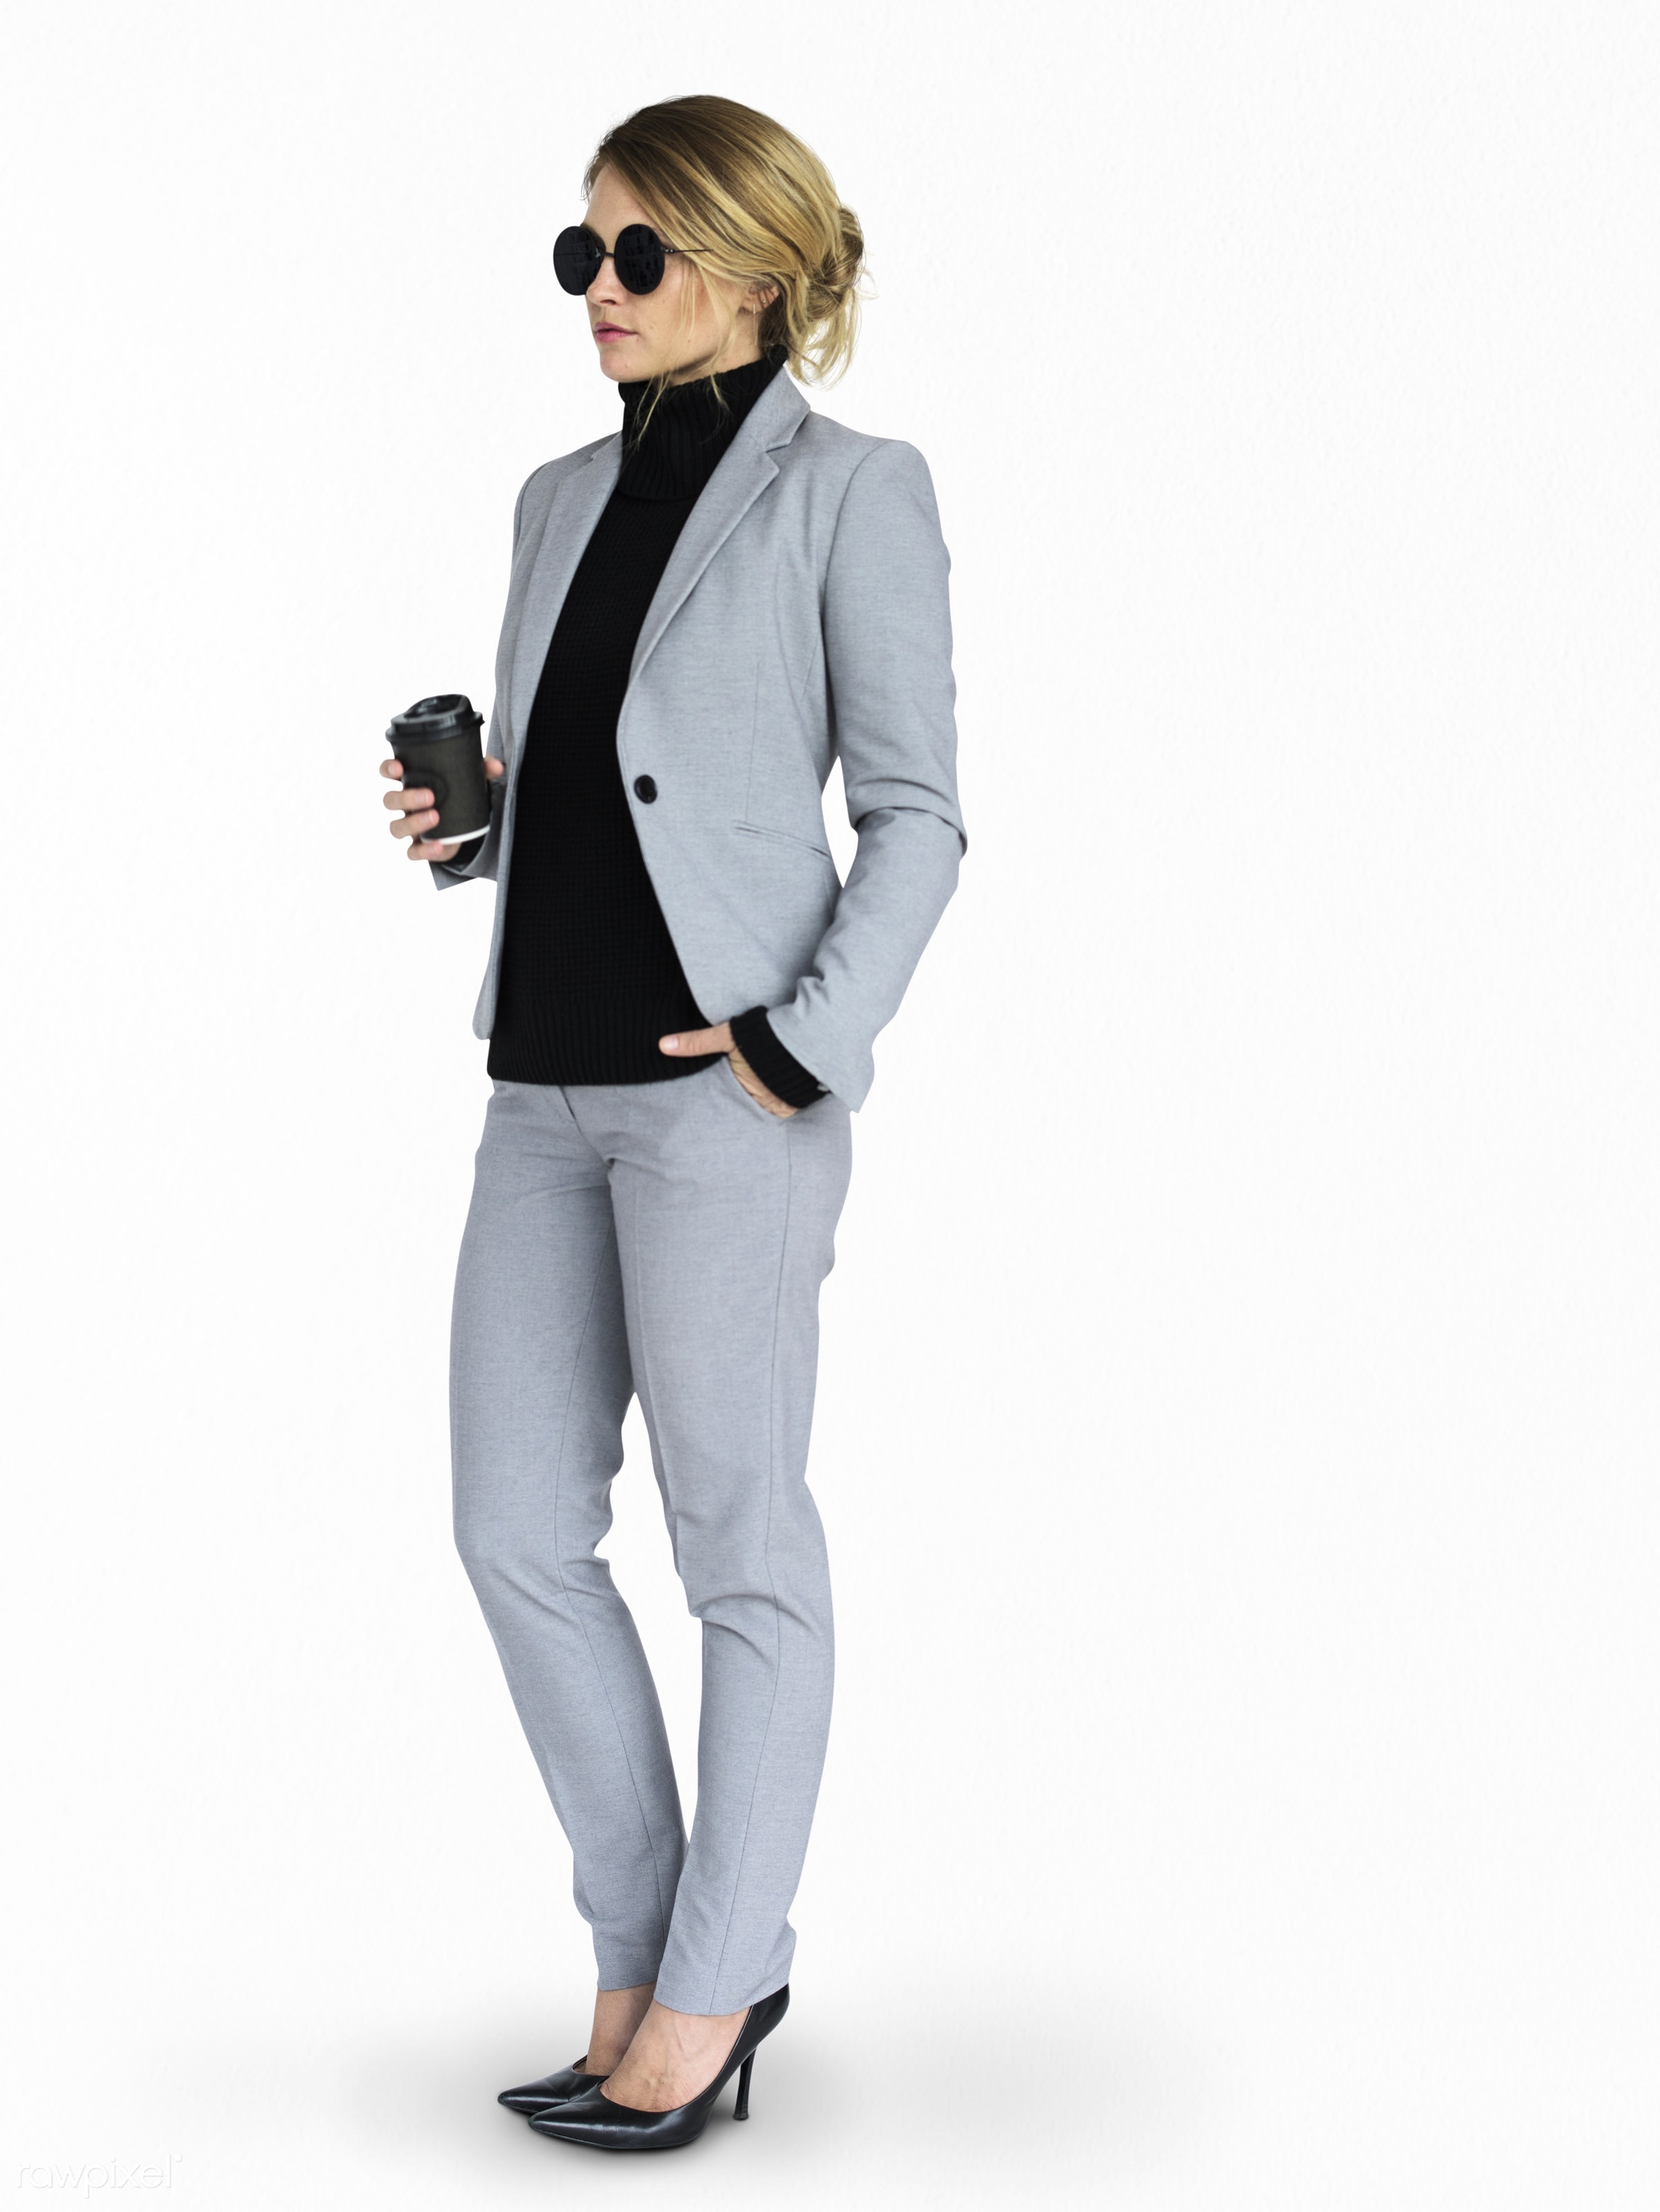 expression, studio, person, holding, business wear, isolated on white, people, caucasian, girl, woman, wearing sunglasses,...